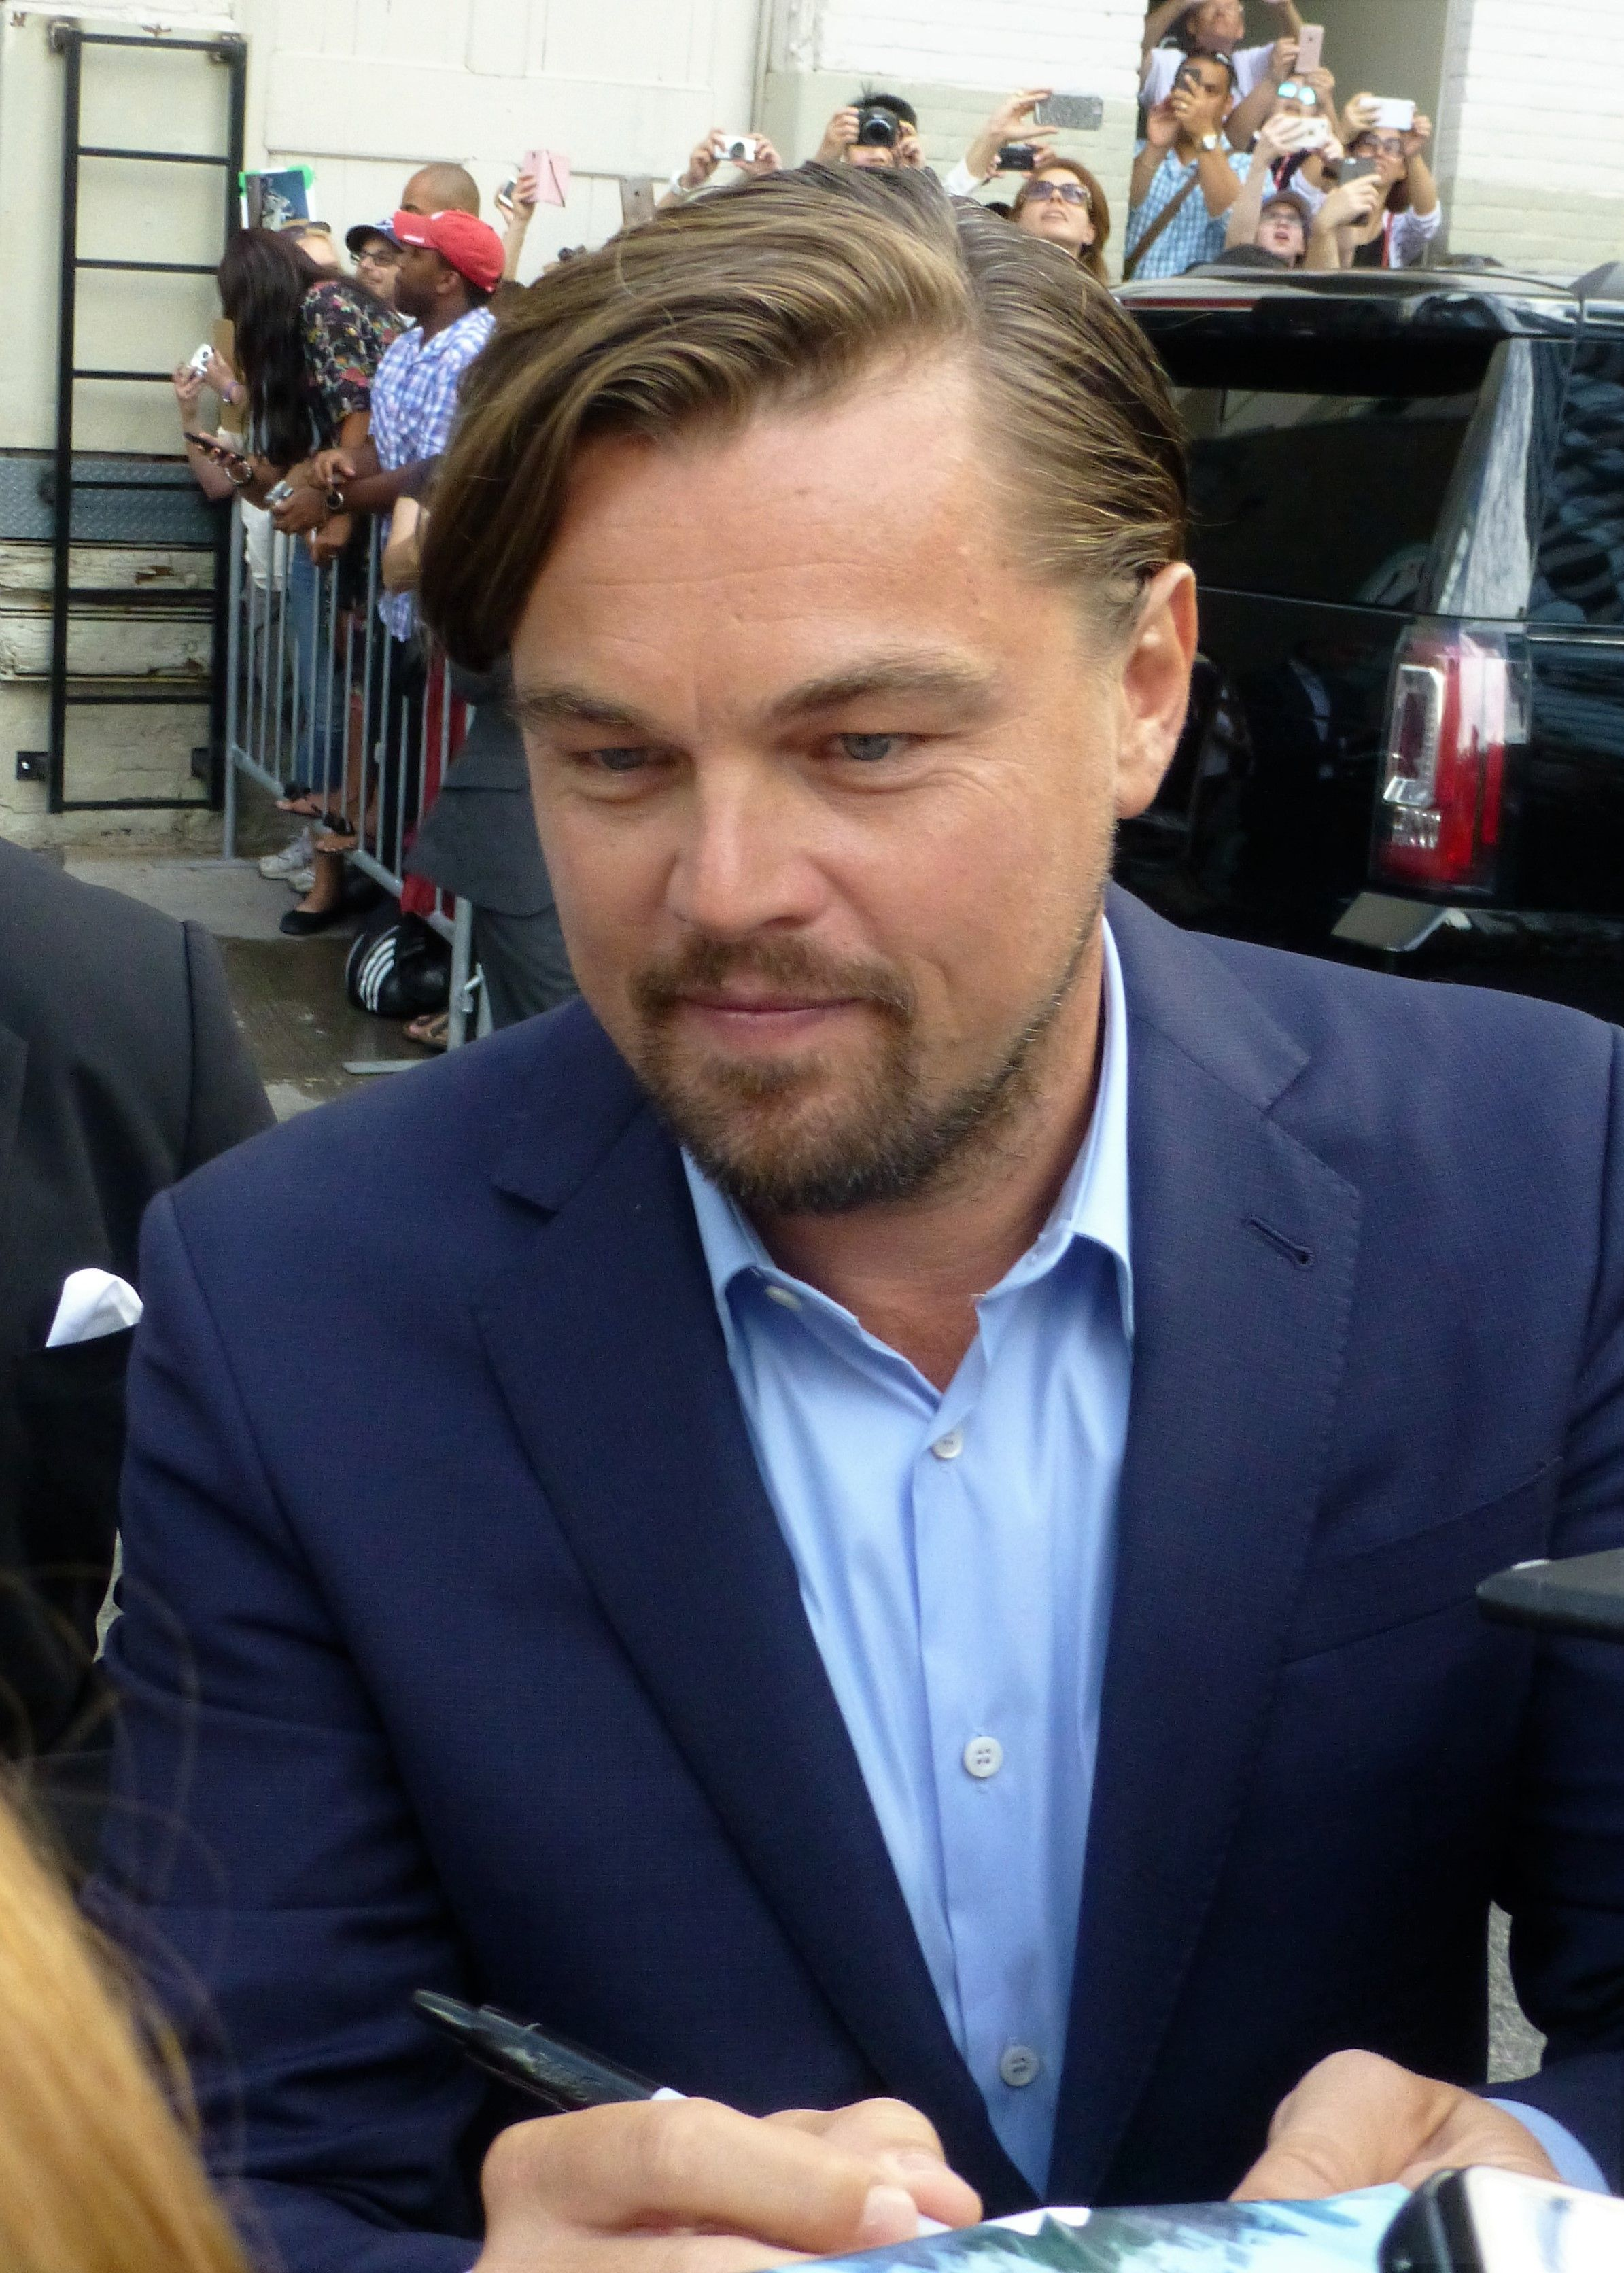 A photo showing Leonardo DiCaprio giving out autographs to his lovely fans at an event.